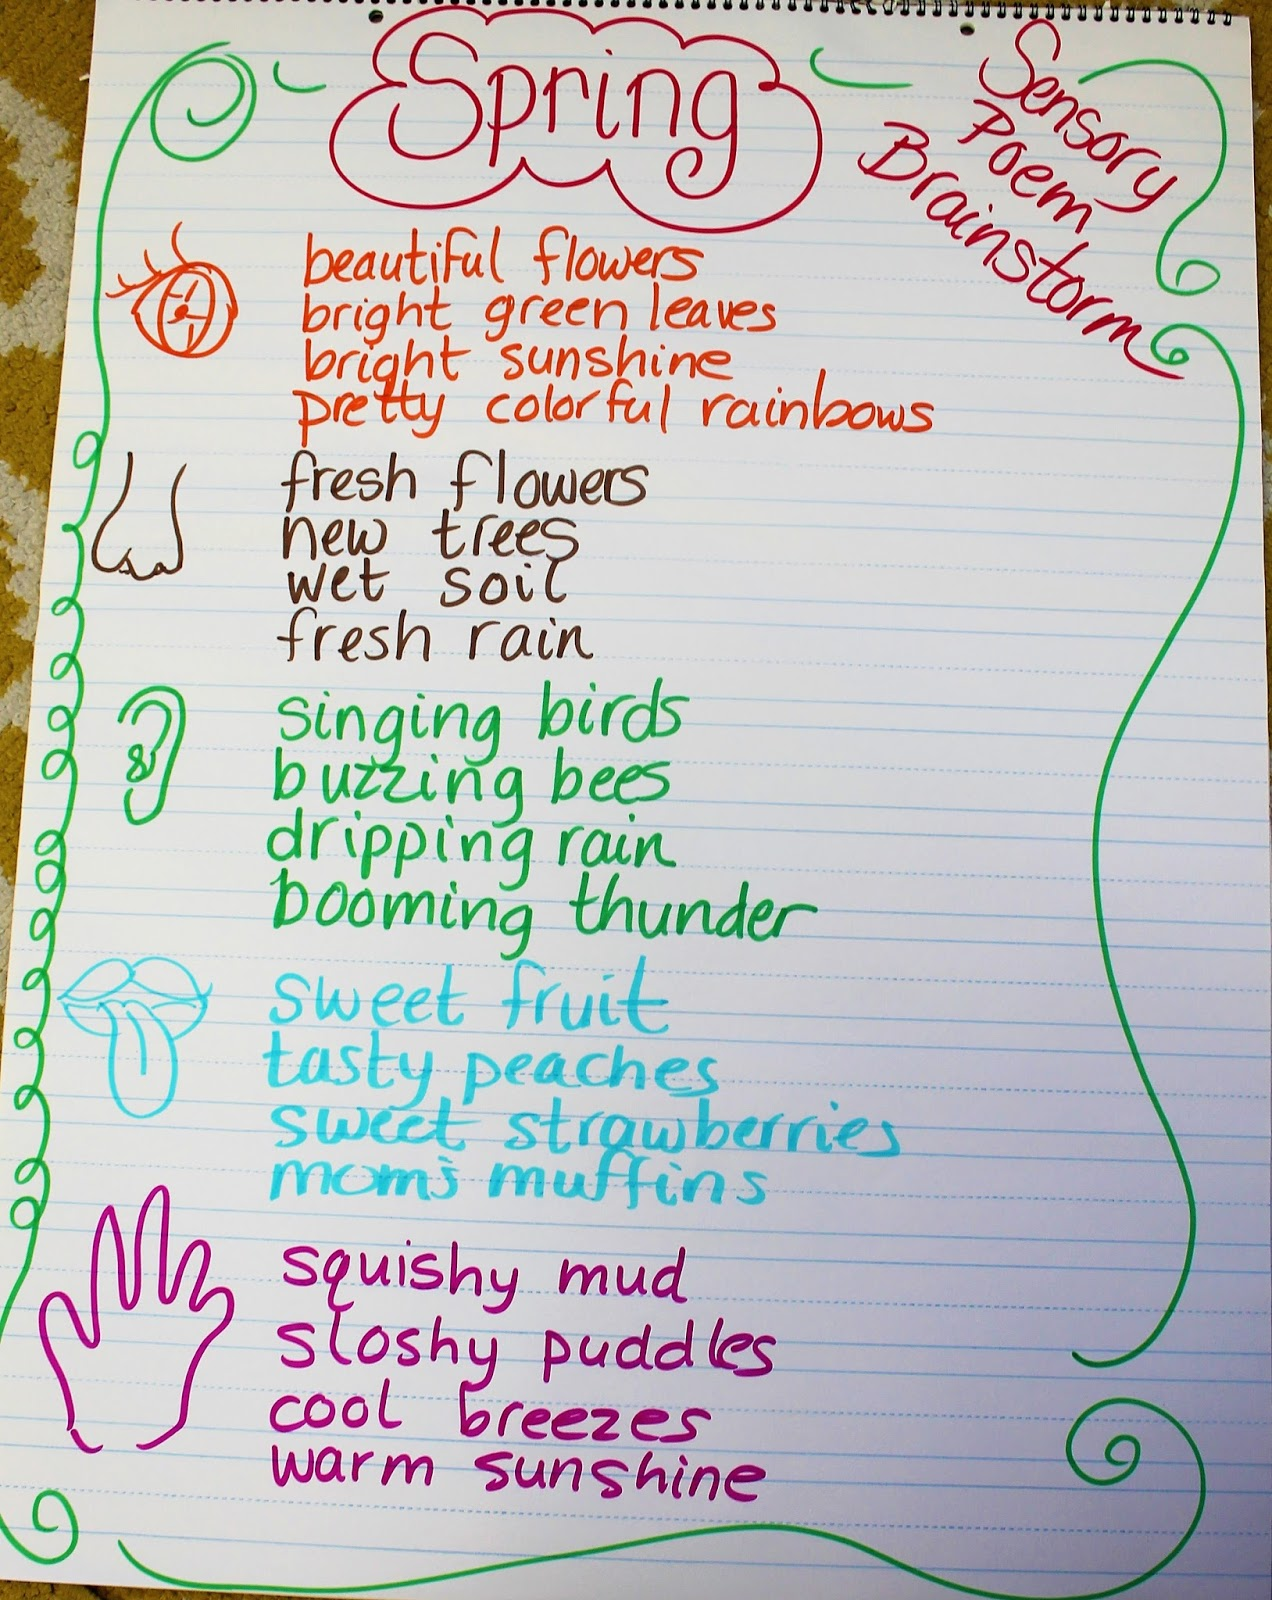 First grade wow celebrating spring with poetry kids wrote a rough draft of their spring sensory poems we edited and published in a rainbow shape i love this project and have done it for the last few mightylinksfo